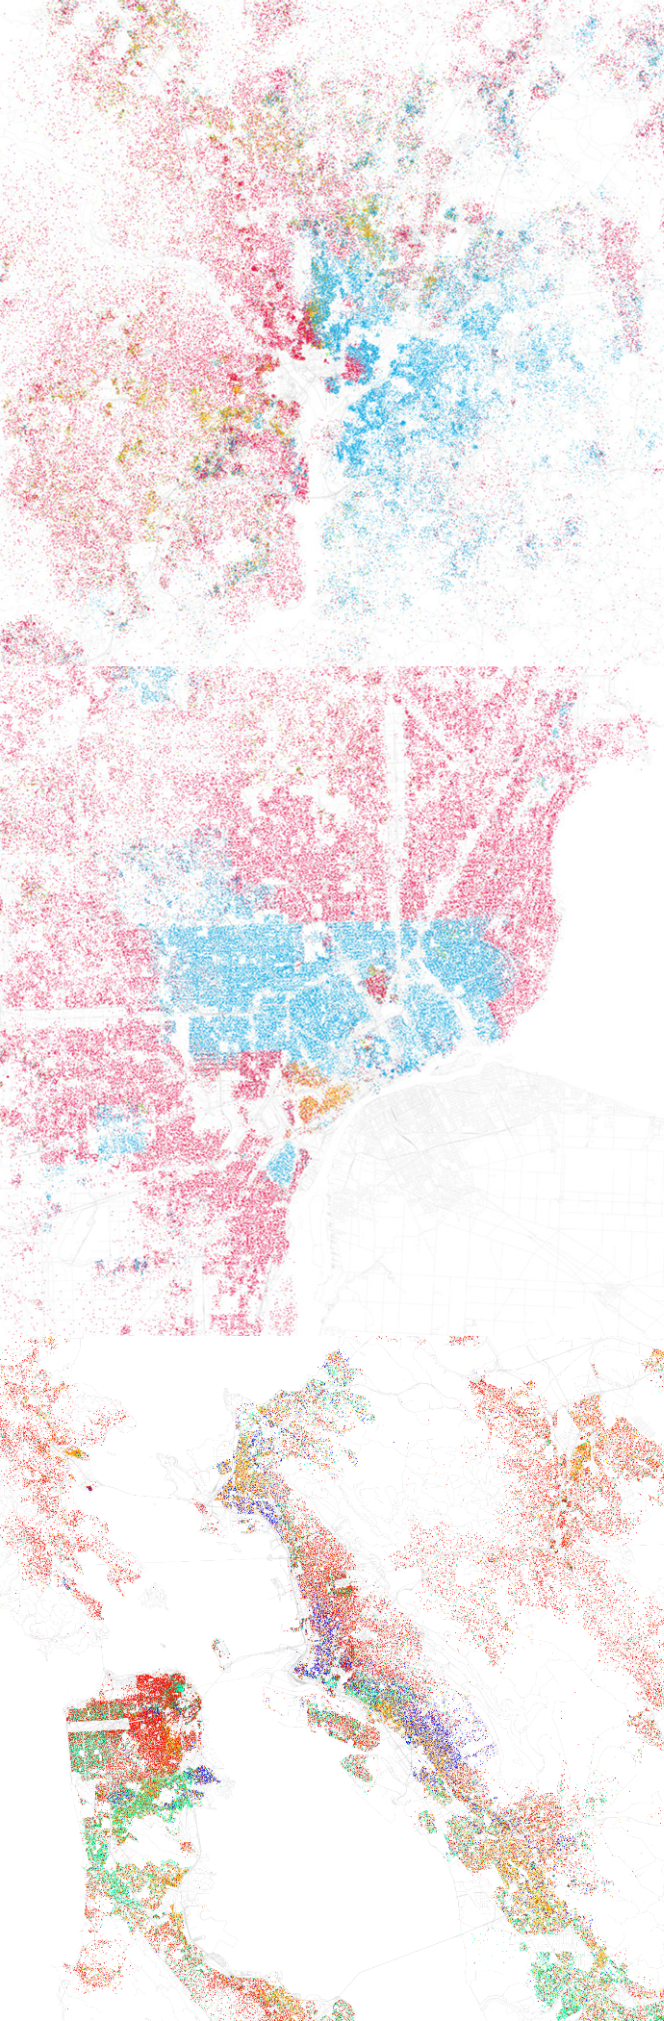 Maps showing the ethnic segregation of various cities at the 2000 census. Washington has a stark East/West divide; Detroit is even more strongly segregated.